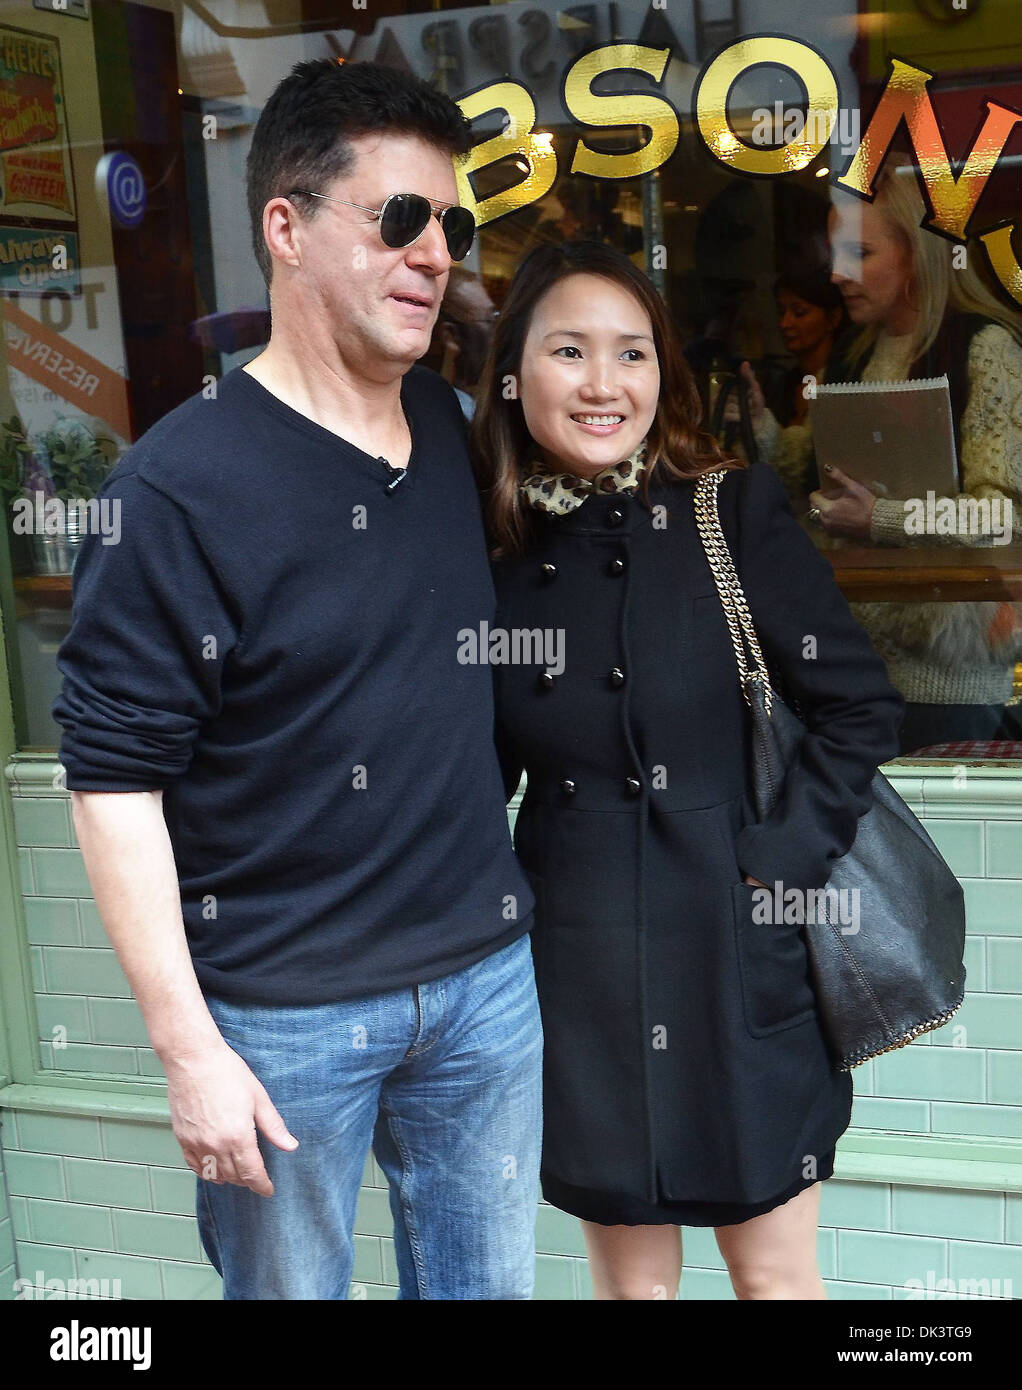 A Simon Cowell look-alike caused quite a stir on Grafton Street today while filming a skit for Craig Doyle Live Show Many - Stock Image